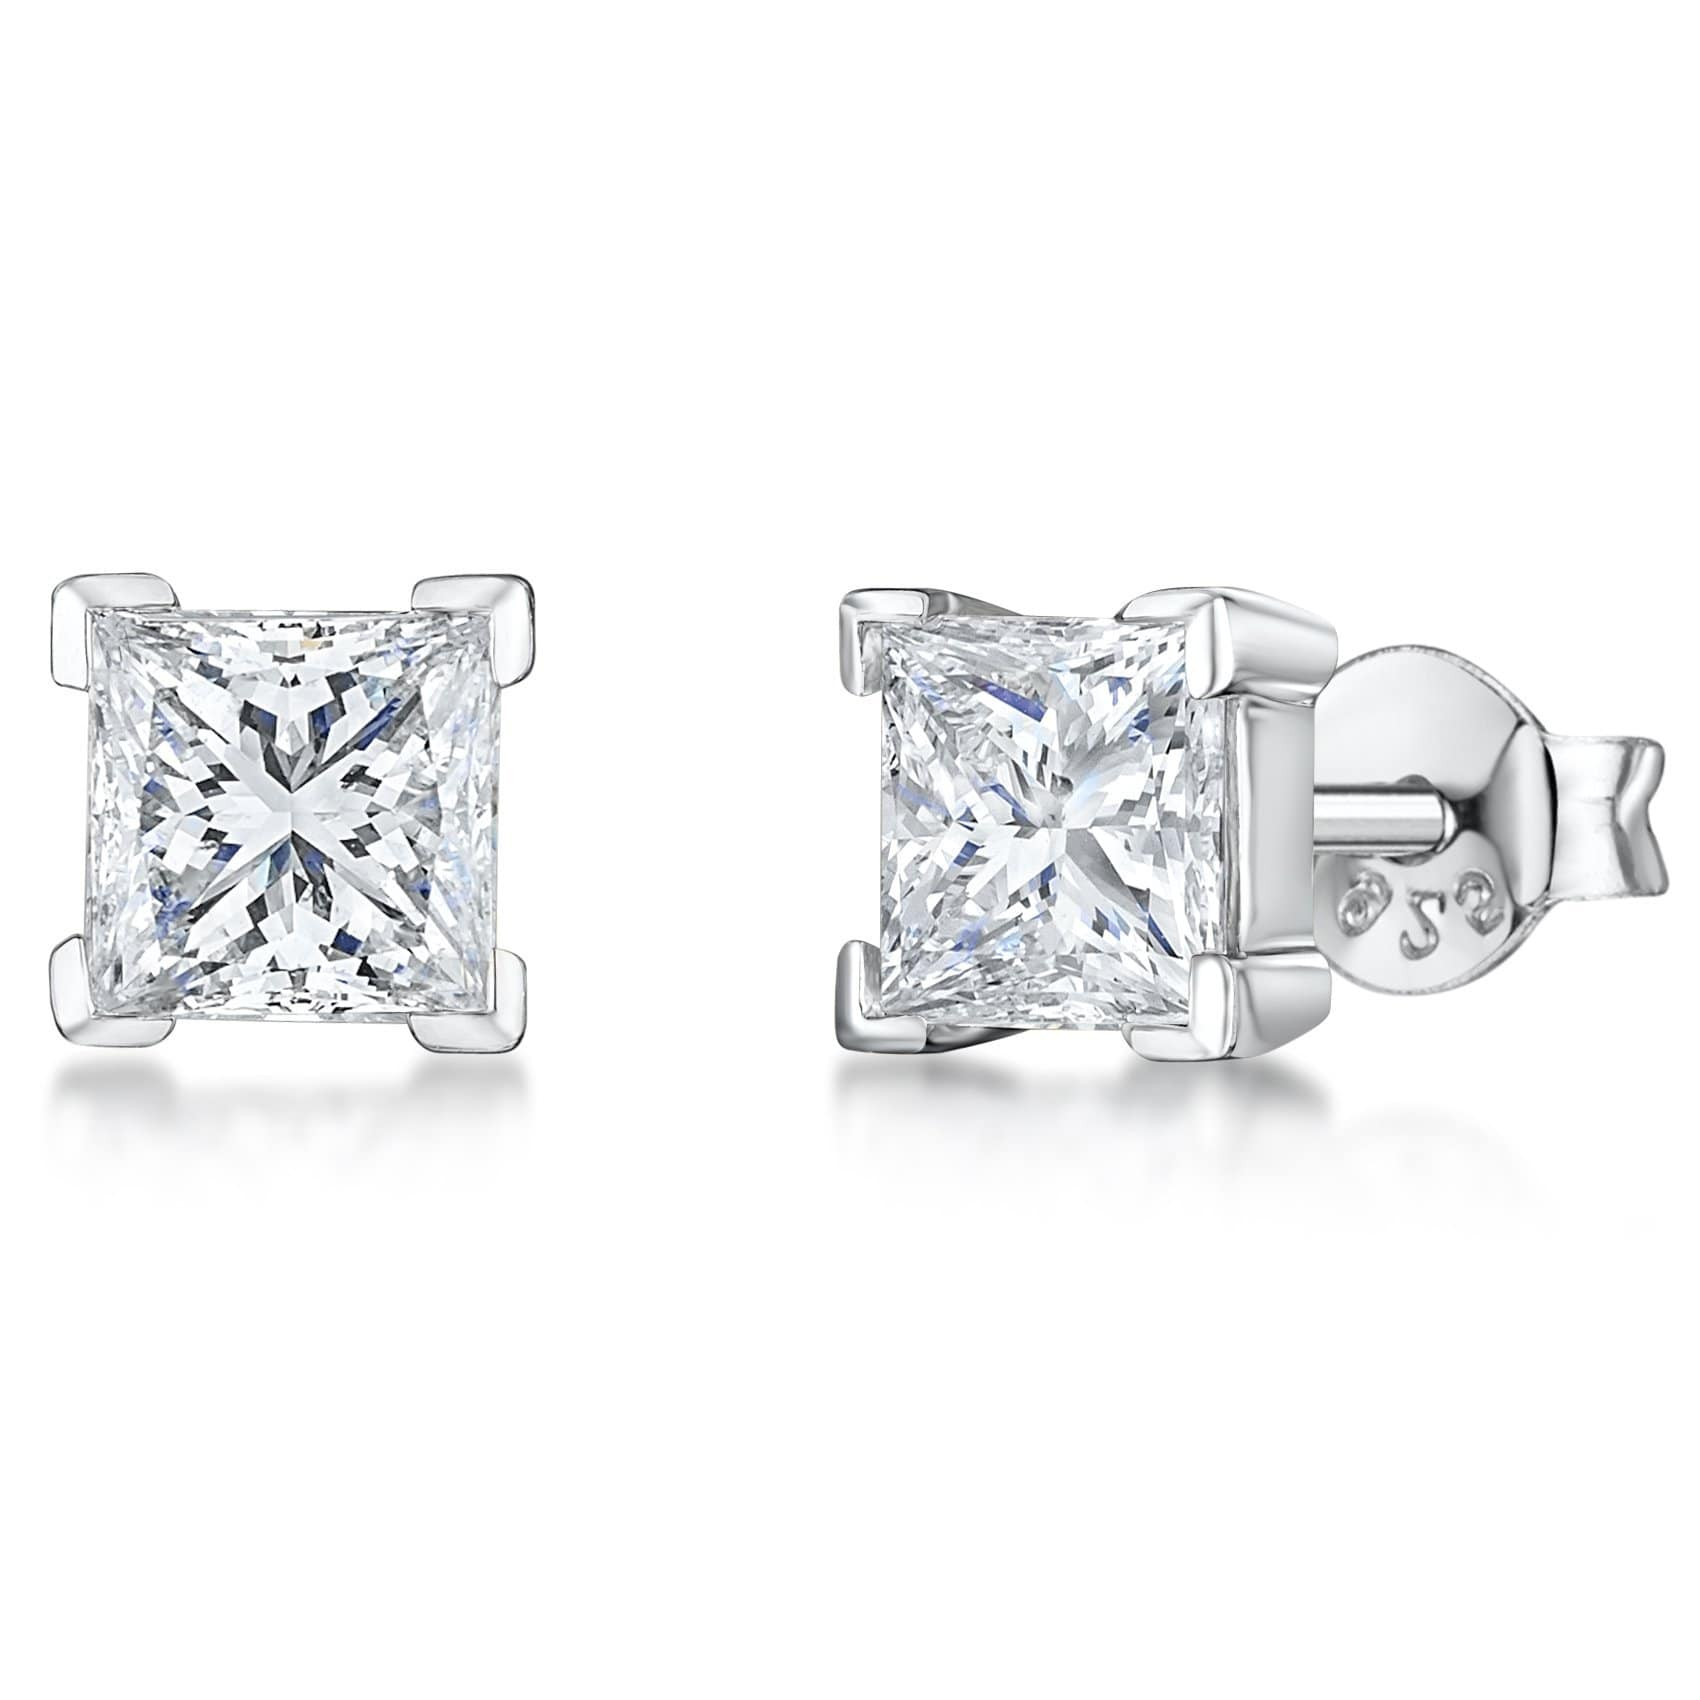 Sterling Silver Square Cubic Zirconia Solitaire Stud Earrings - JOOLS By Jenny Brown